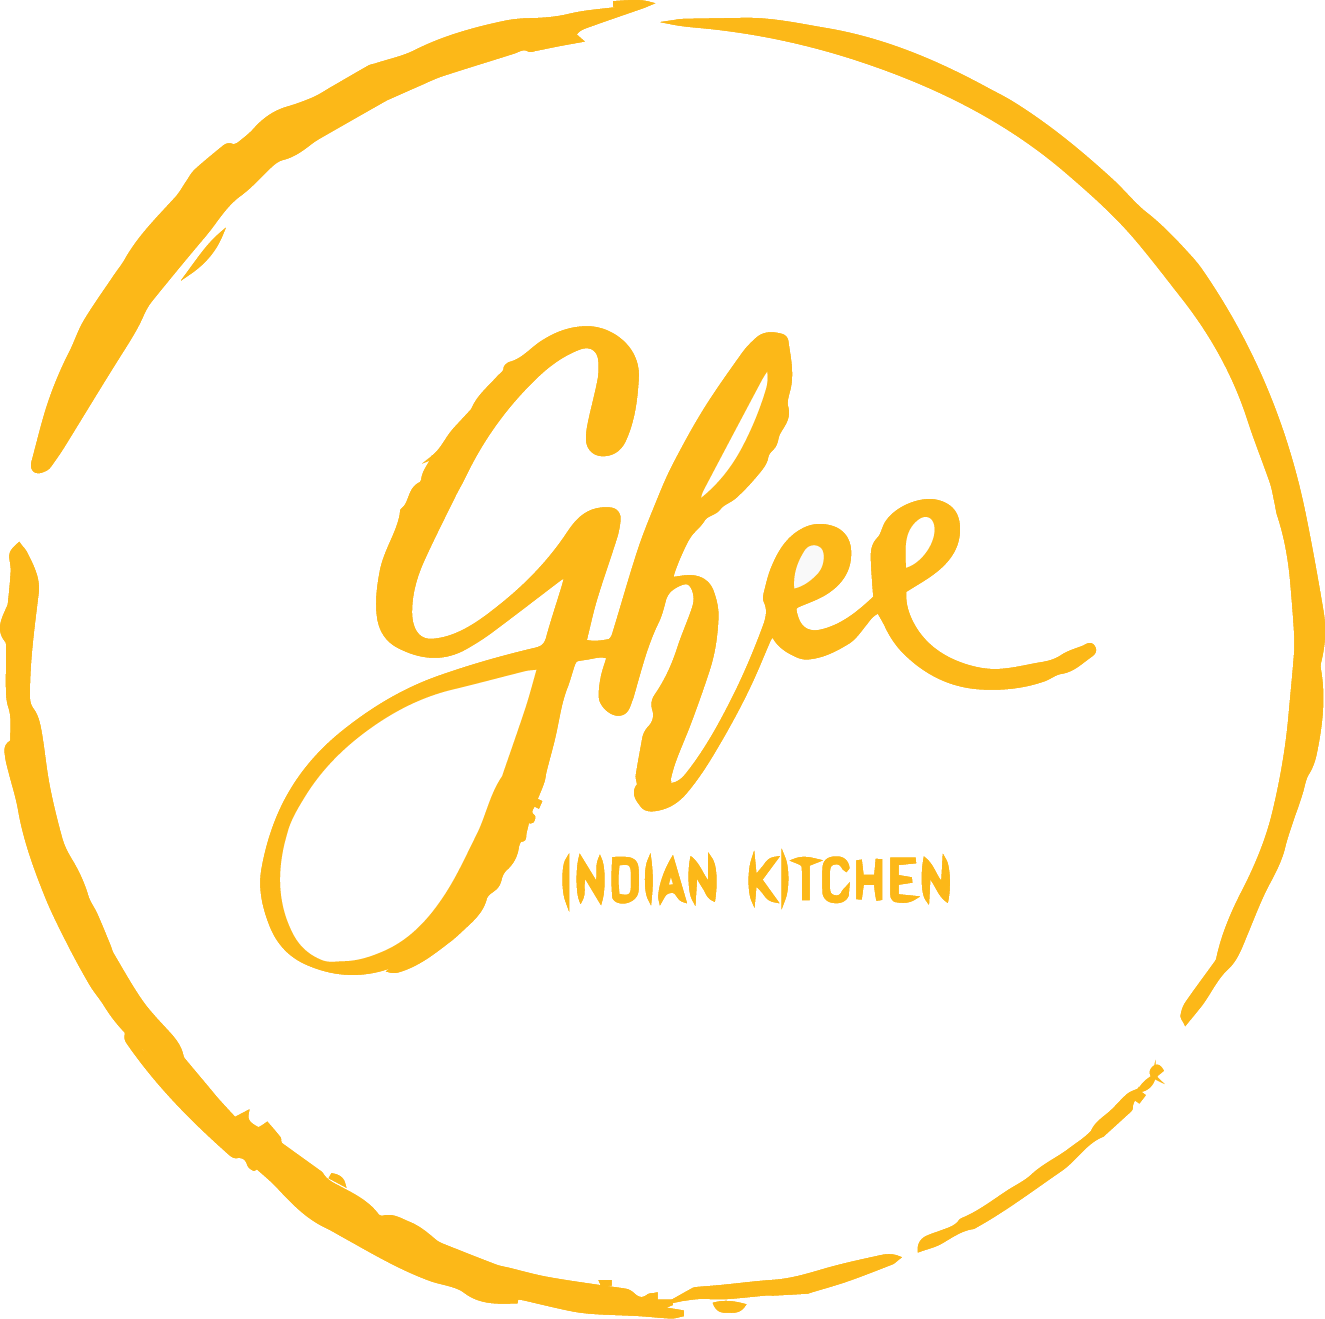 Ghee Indian Kitchen Downtown Dadeland Restaurant 2023016 ...